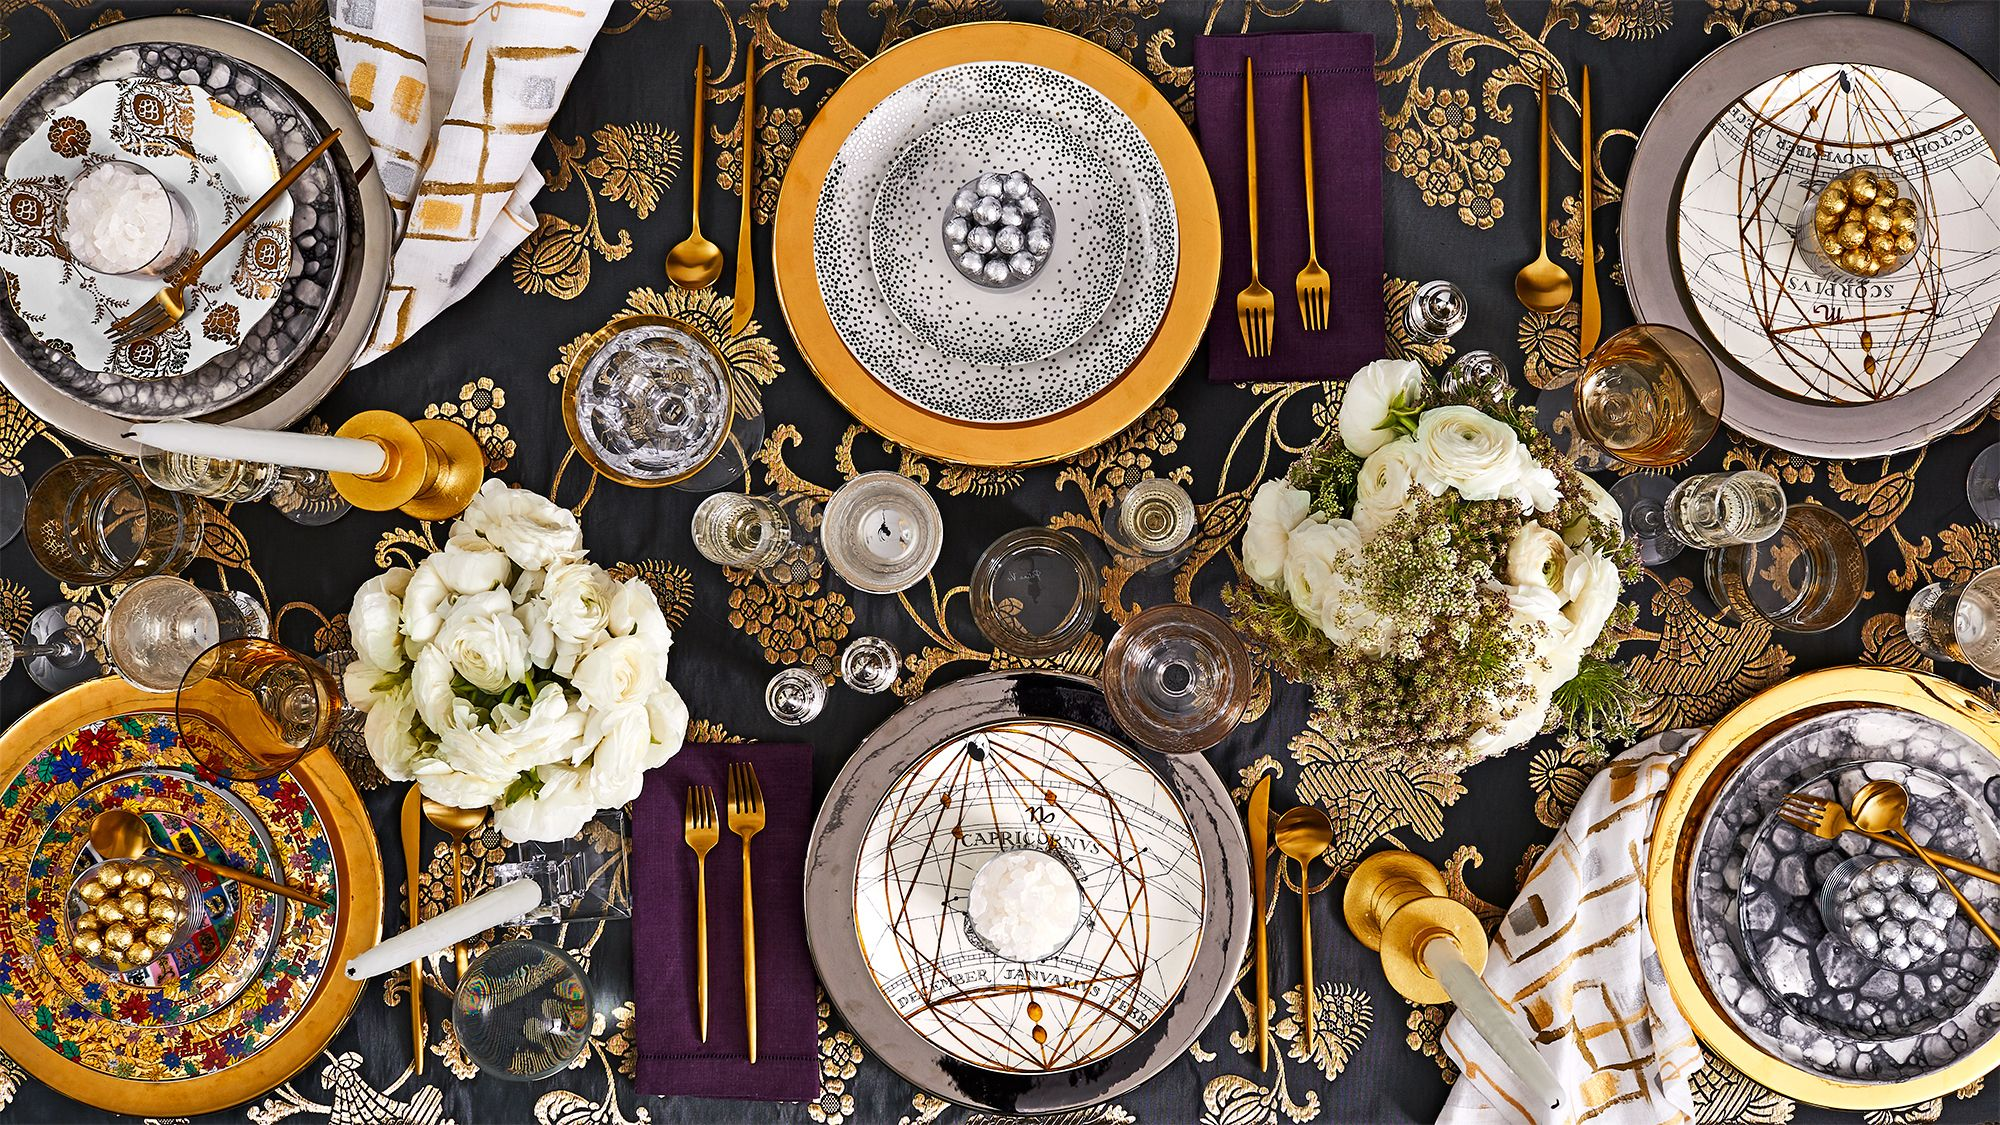 25 Best New Year S Eve Decorations For 2021 2021 New Year S Decorations